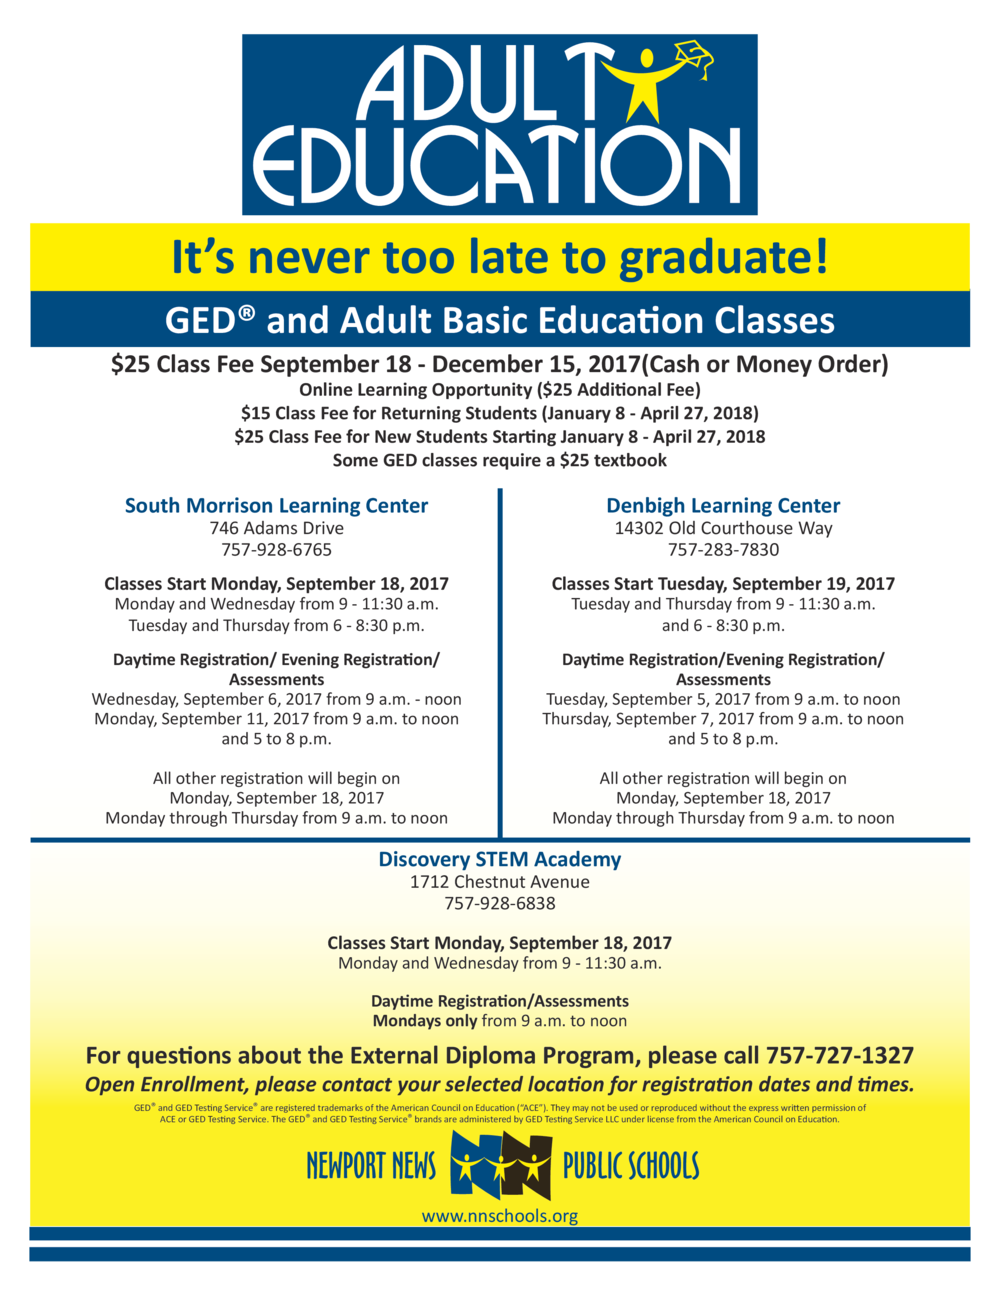 AdultEd_Flyer_Fall 2017 - GED.png